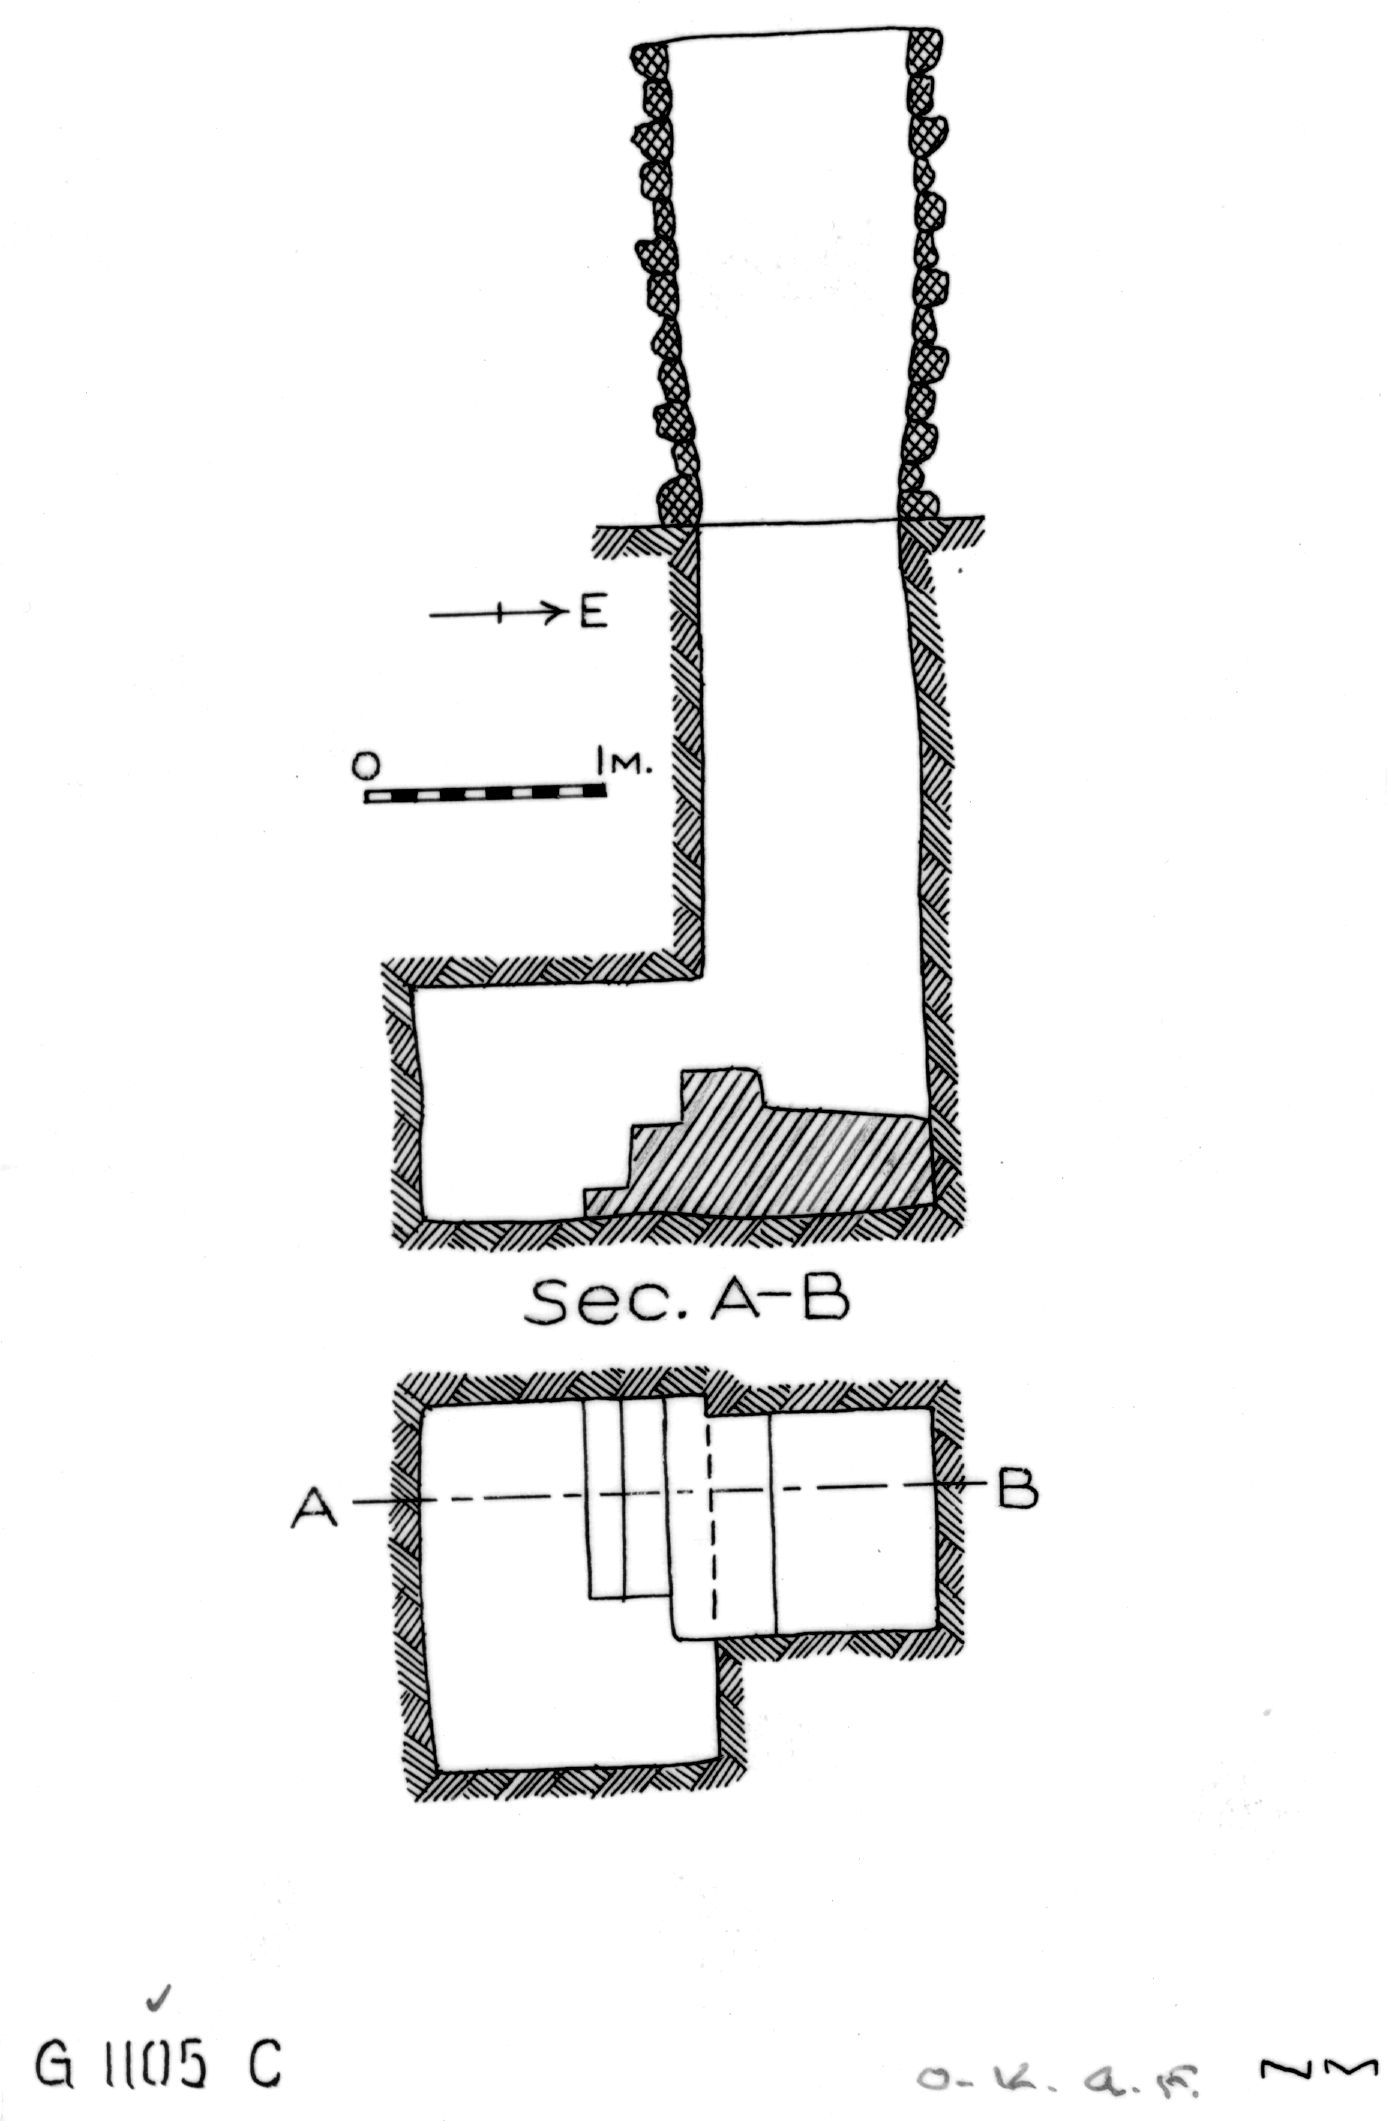 Maps and plans: G 1104+1105: G 1105, Shaft C